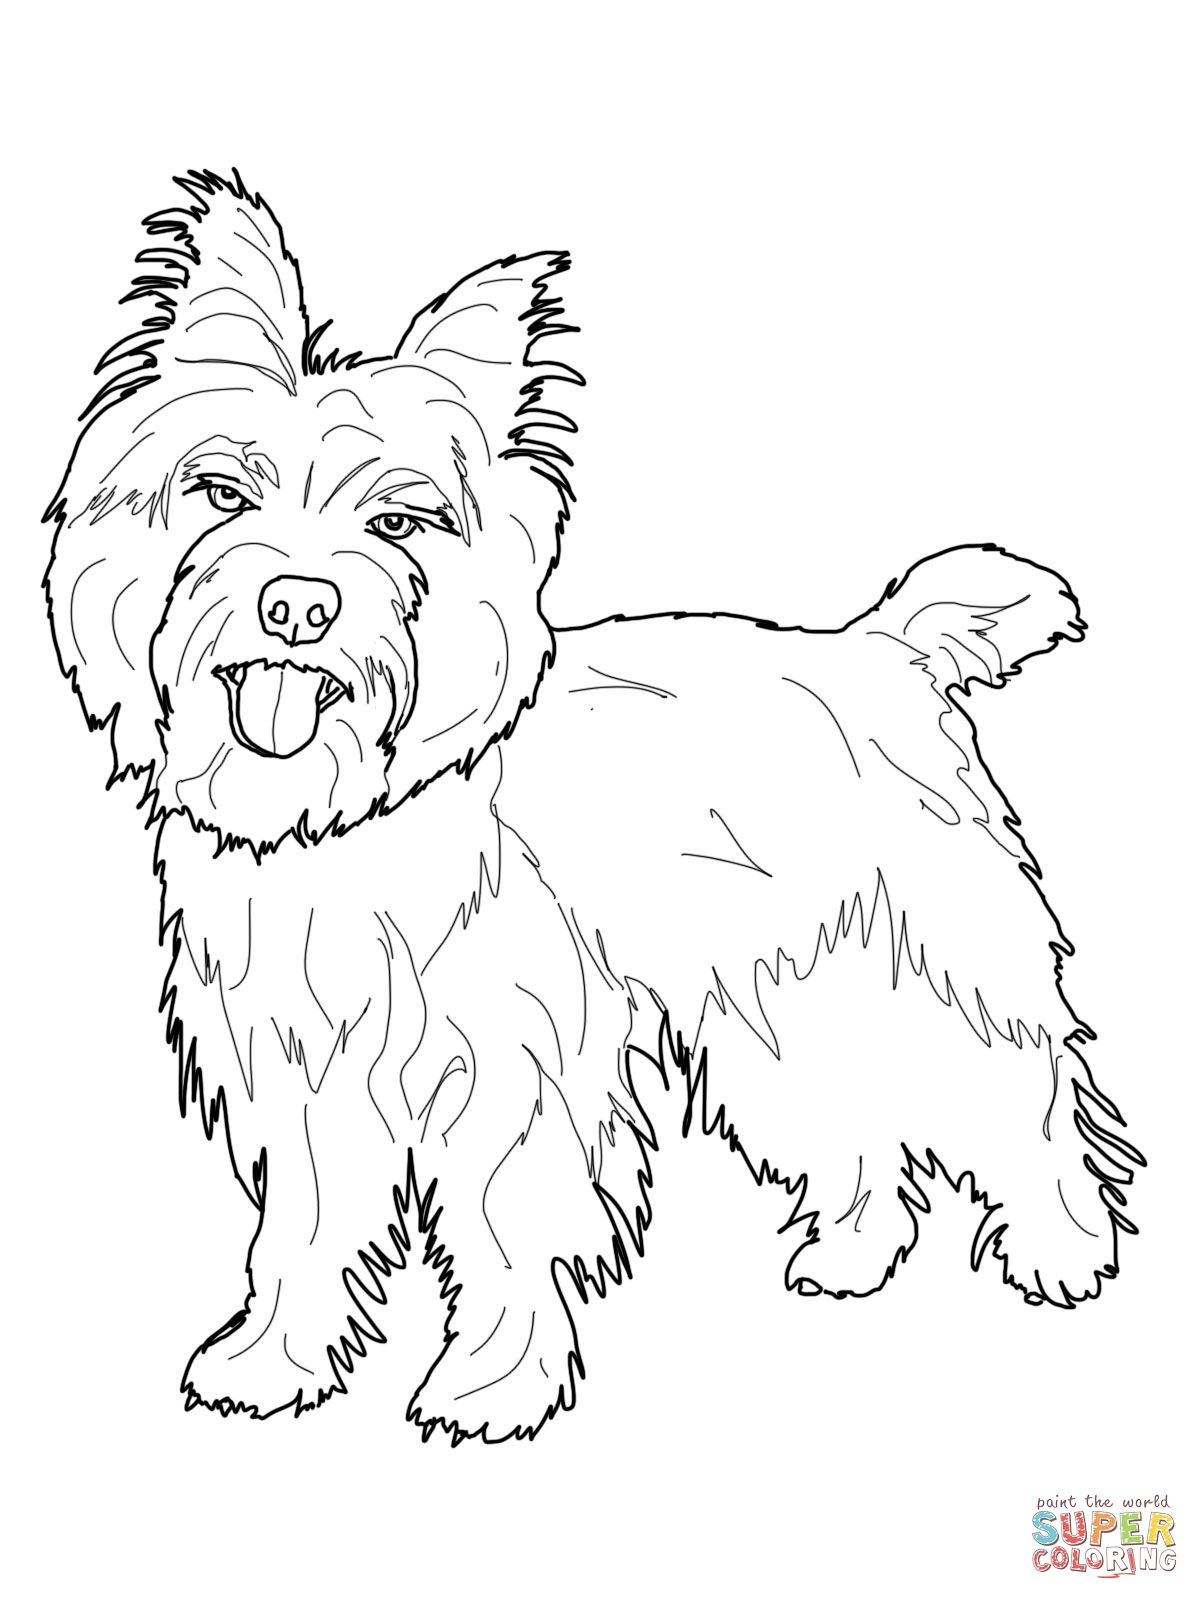 Cairn Terrier Dog Coloring Page Dog Coloring Book Horse Coloring Pages [ 1600 x 1200 Pixel ]